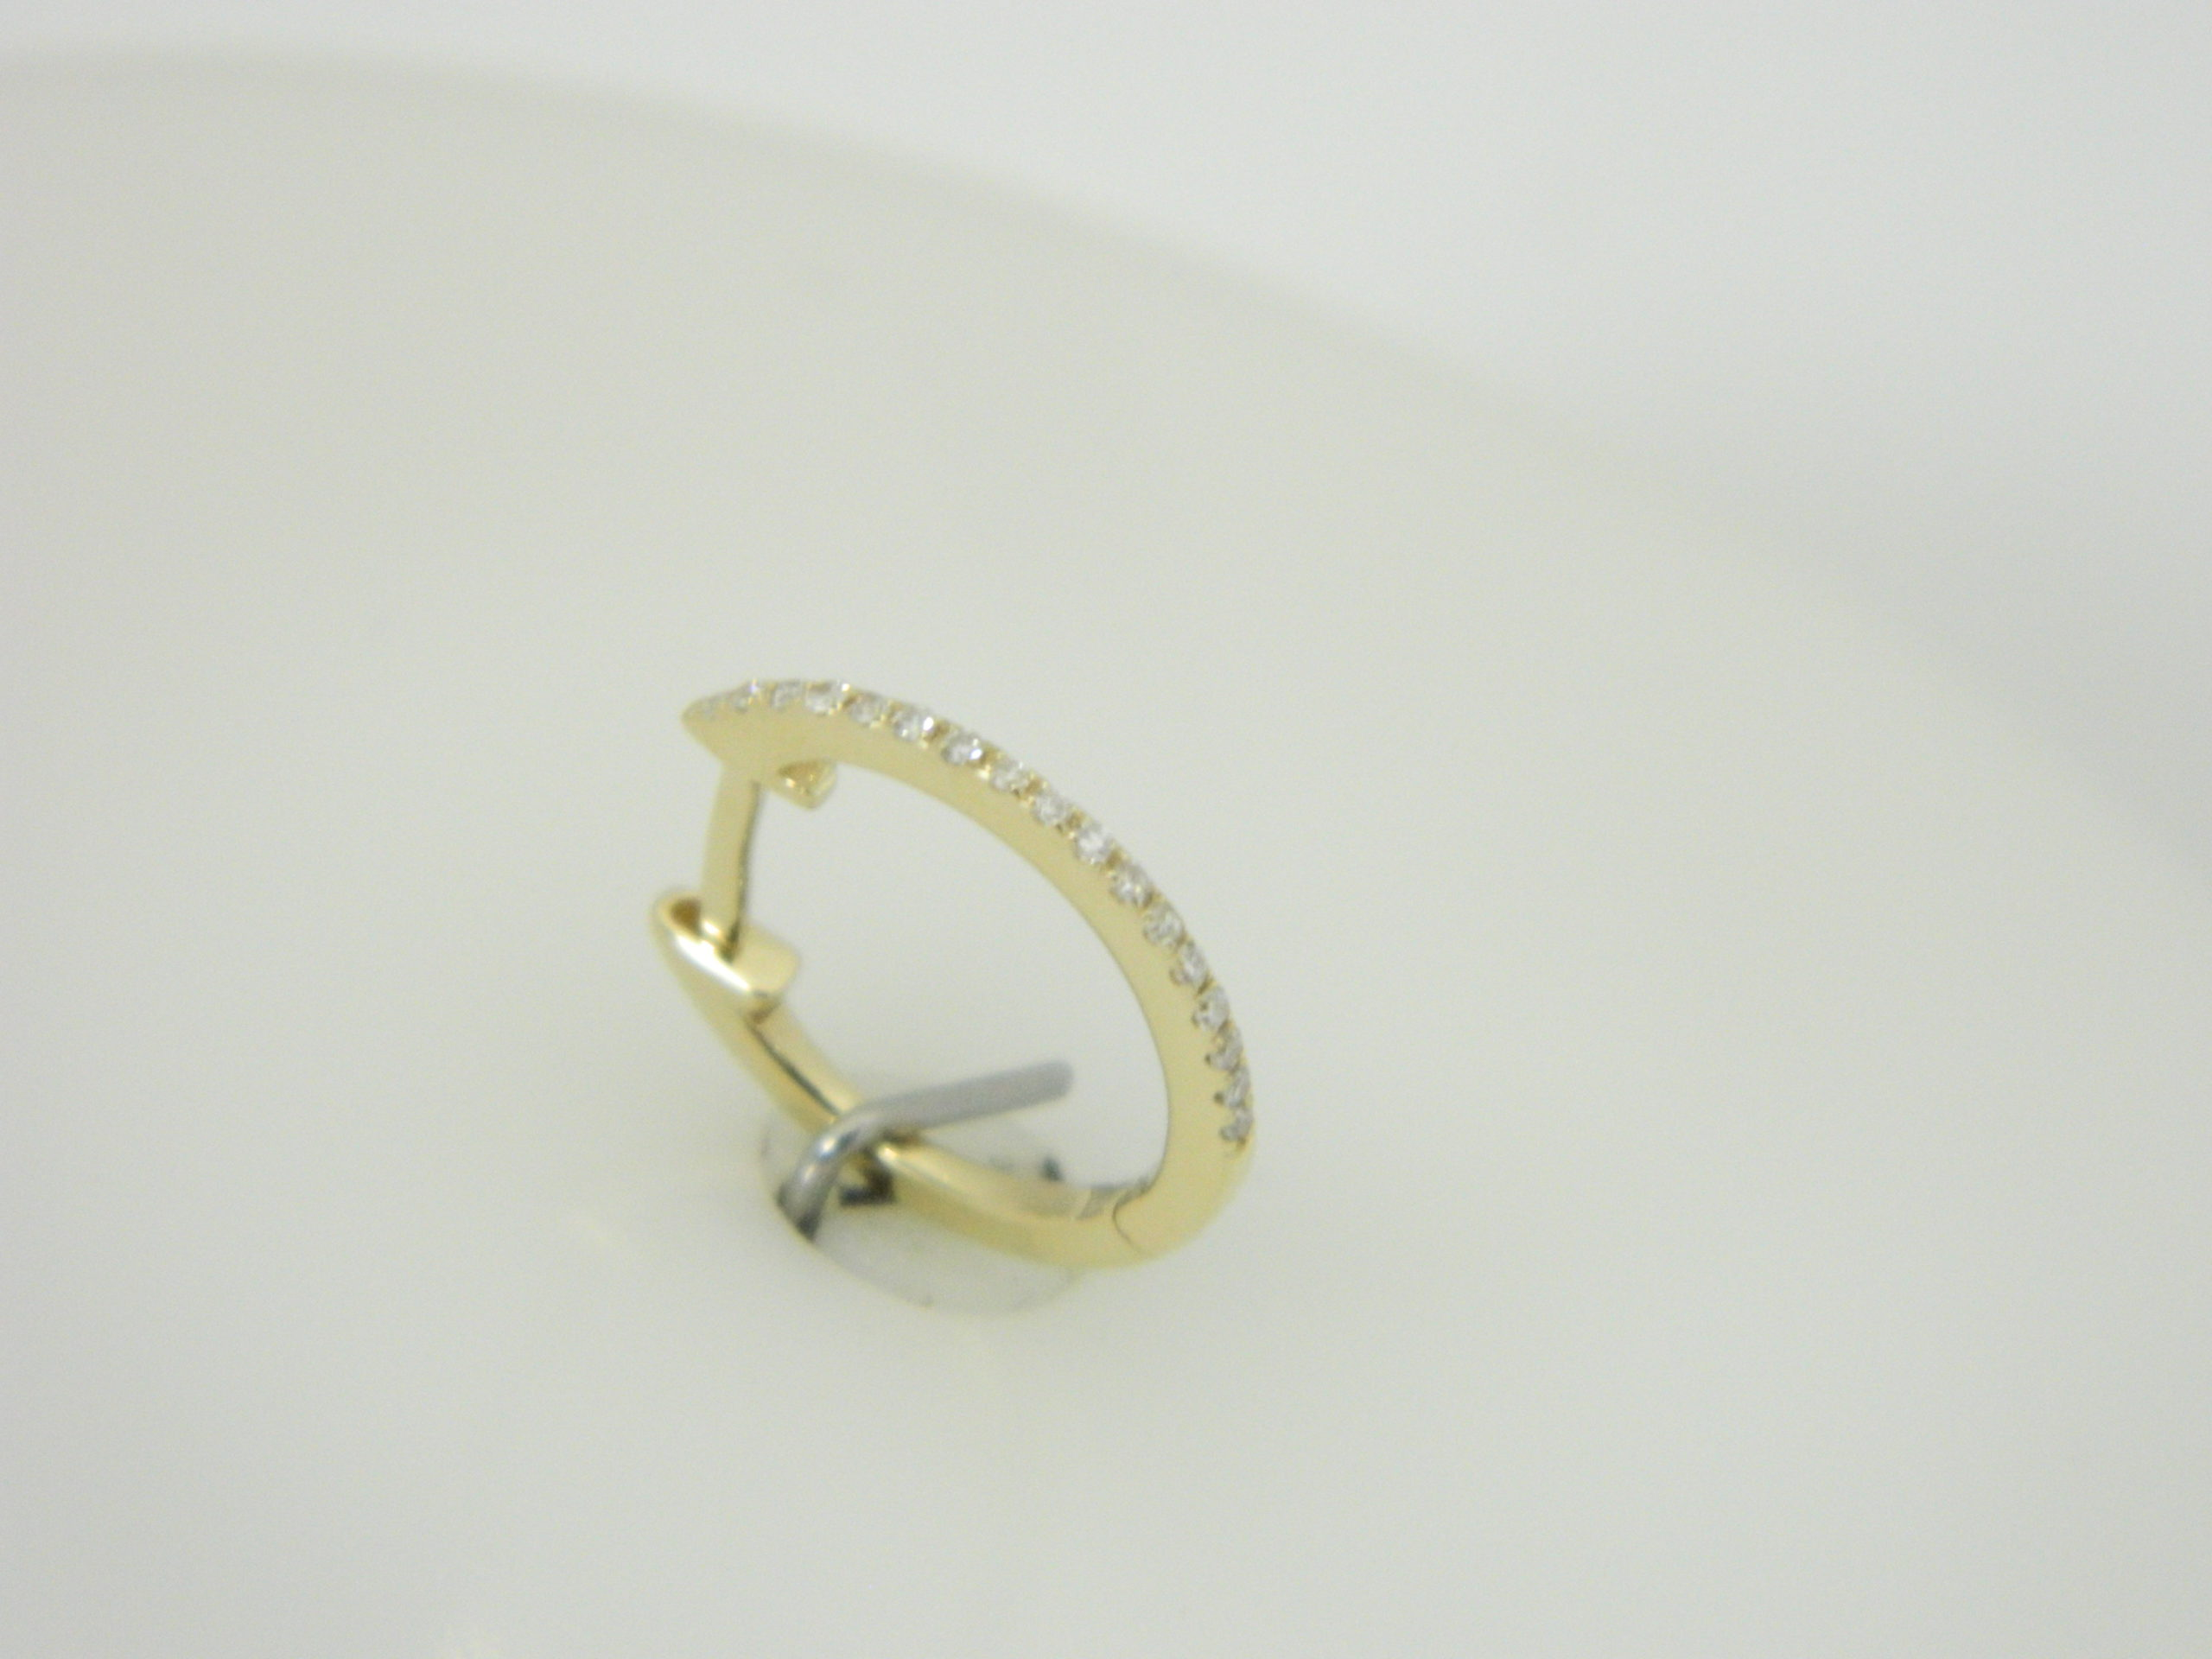 14 Karat Yellow Gold Hoop Mounted Earrings with 34 Round Cut Diamonds weighing 0.09ct tw. Diamond half way around.